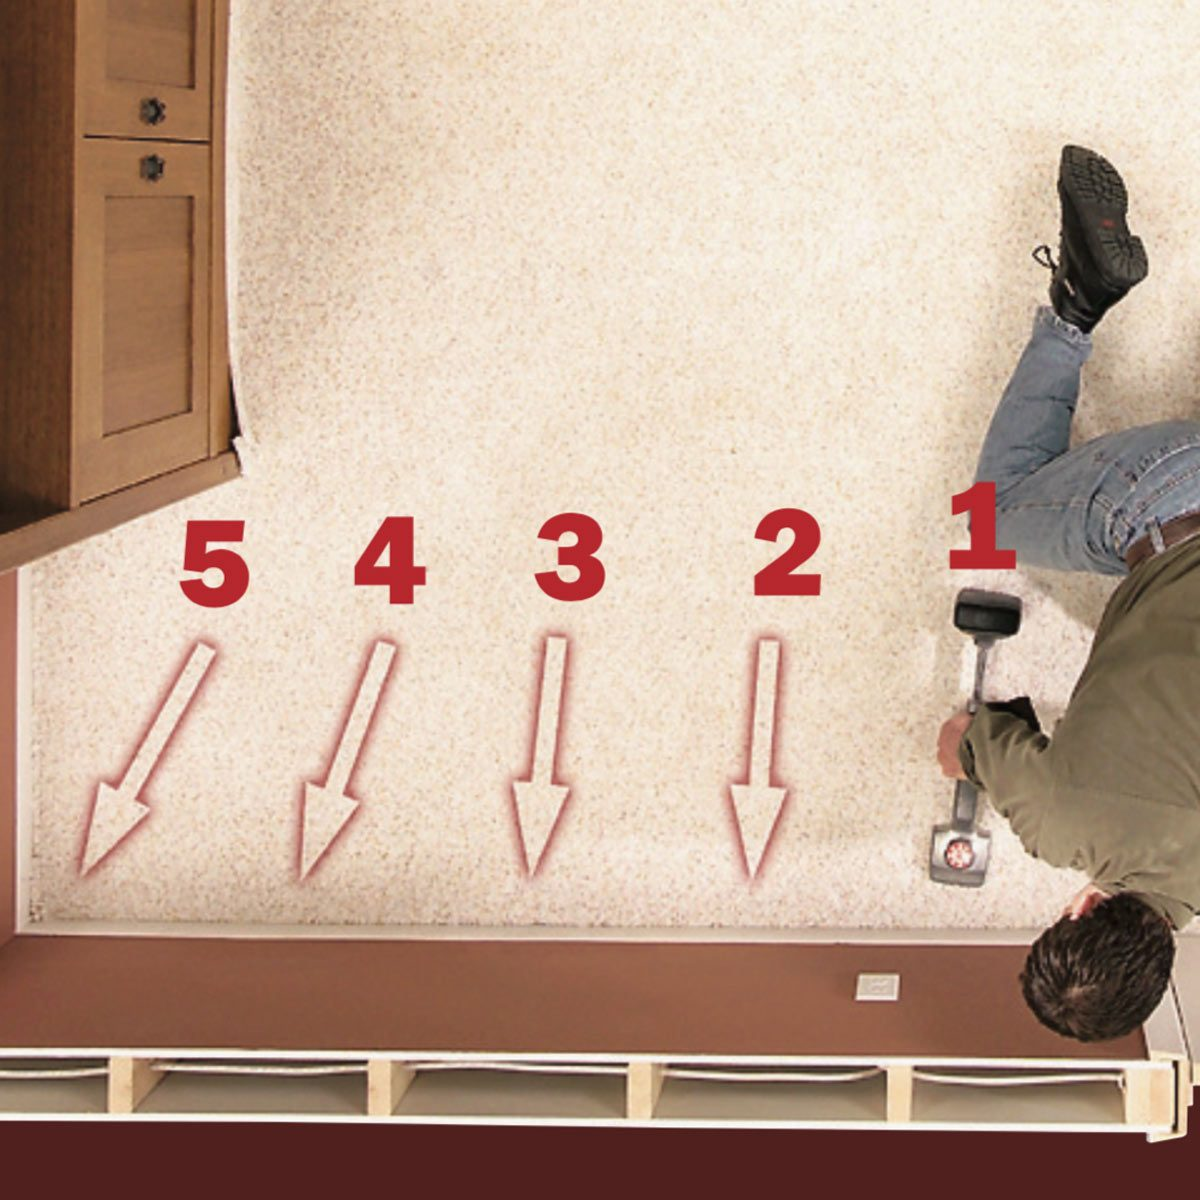 Stretch the carpet against the baseboard with the knee kicker and embed it into the tack strip. If it's too hard to stretch with the knee kicker, ...